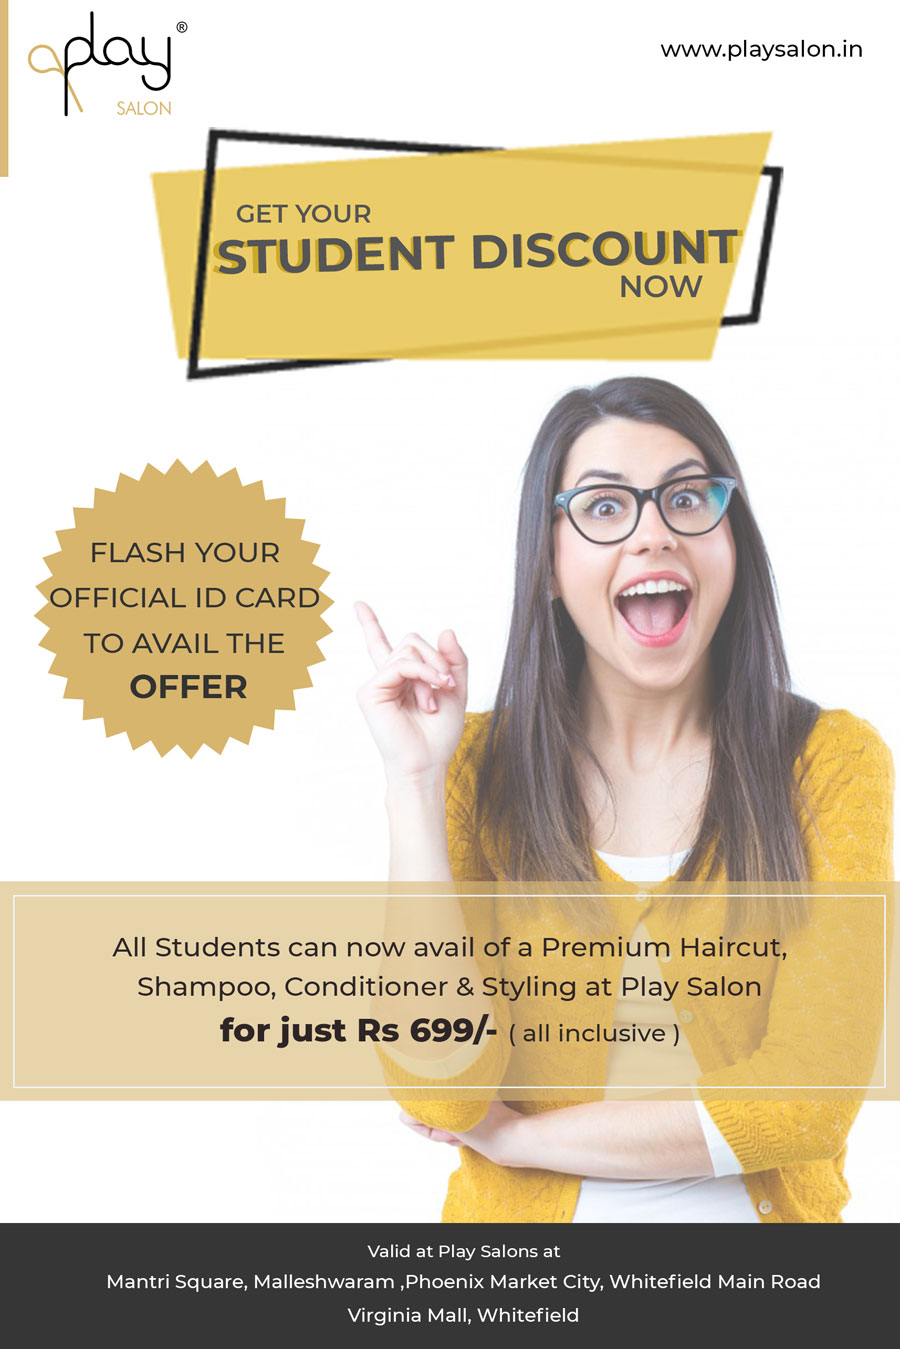 Salon-Offer-for-students-at-Play-Salon